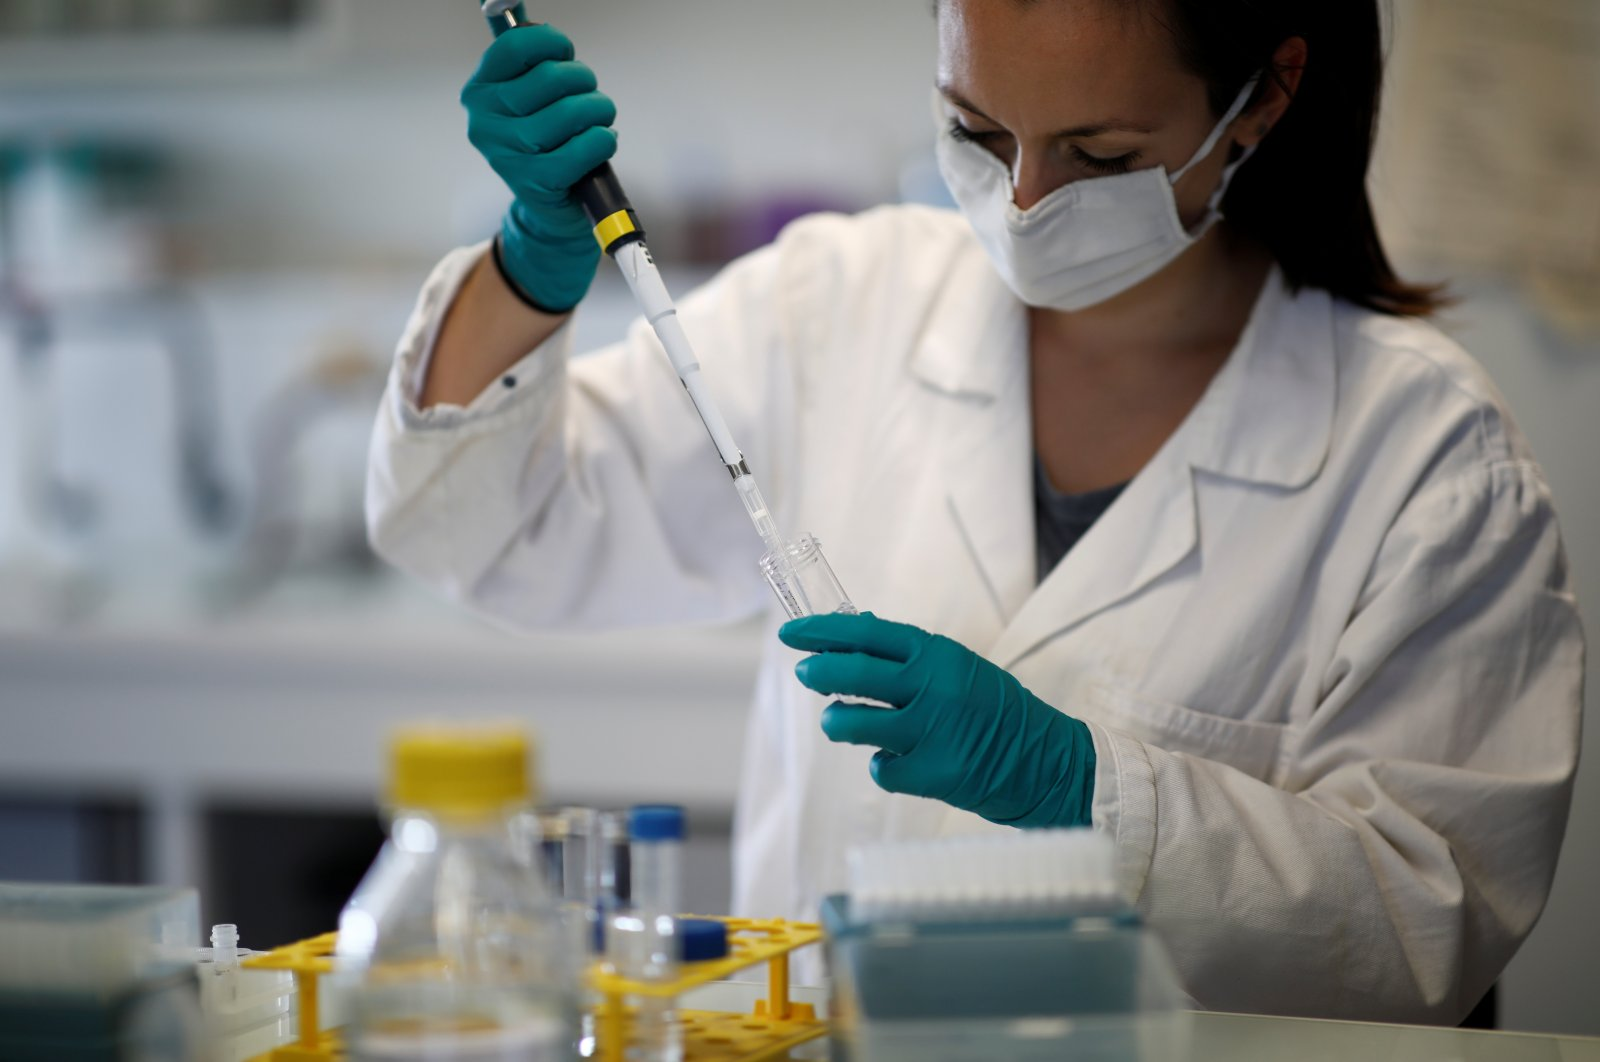 A water quality scientist conducts tests on a water sample at the Eau de Paris research and analysis laboratories in Ivry-sur-Seine, near Paris, France, July 22, 2020. (Reuters Photo)